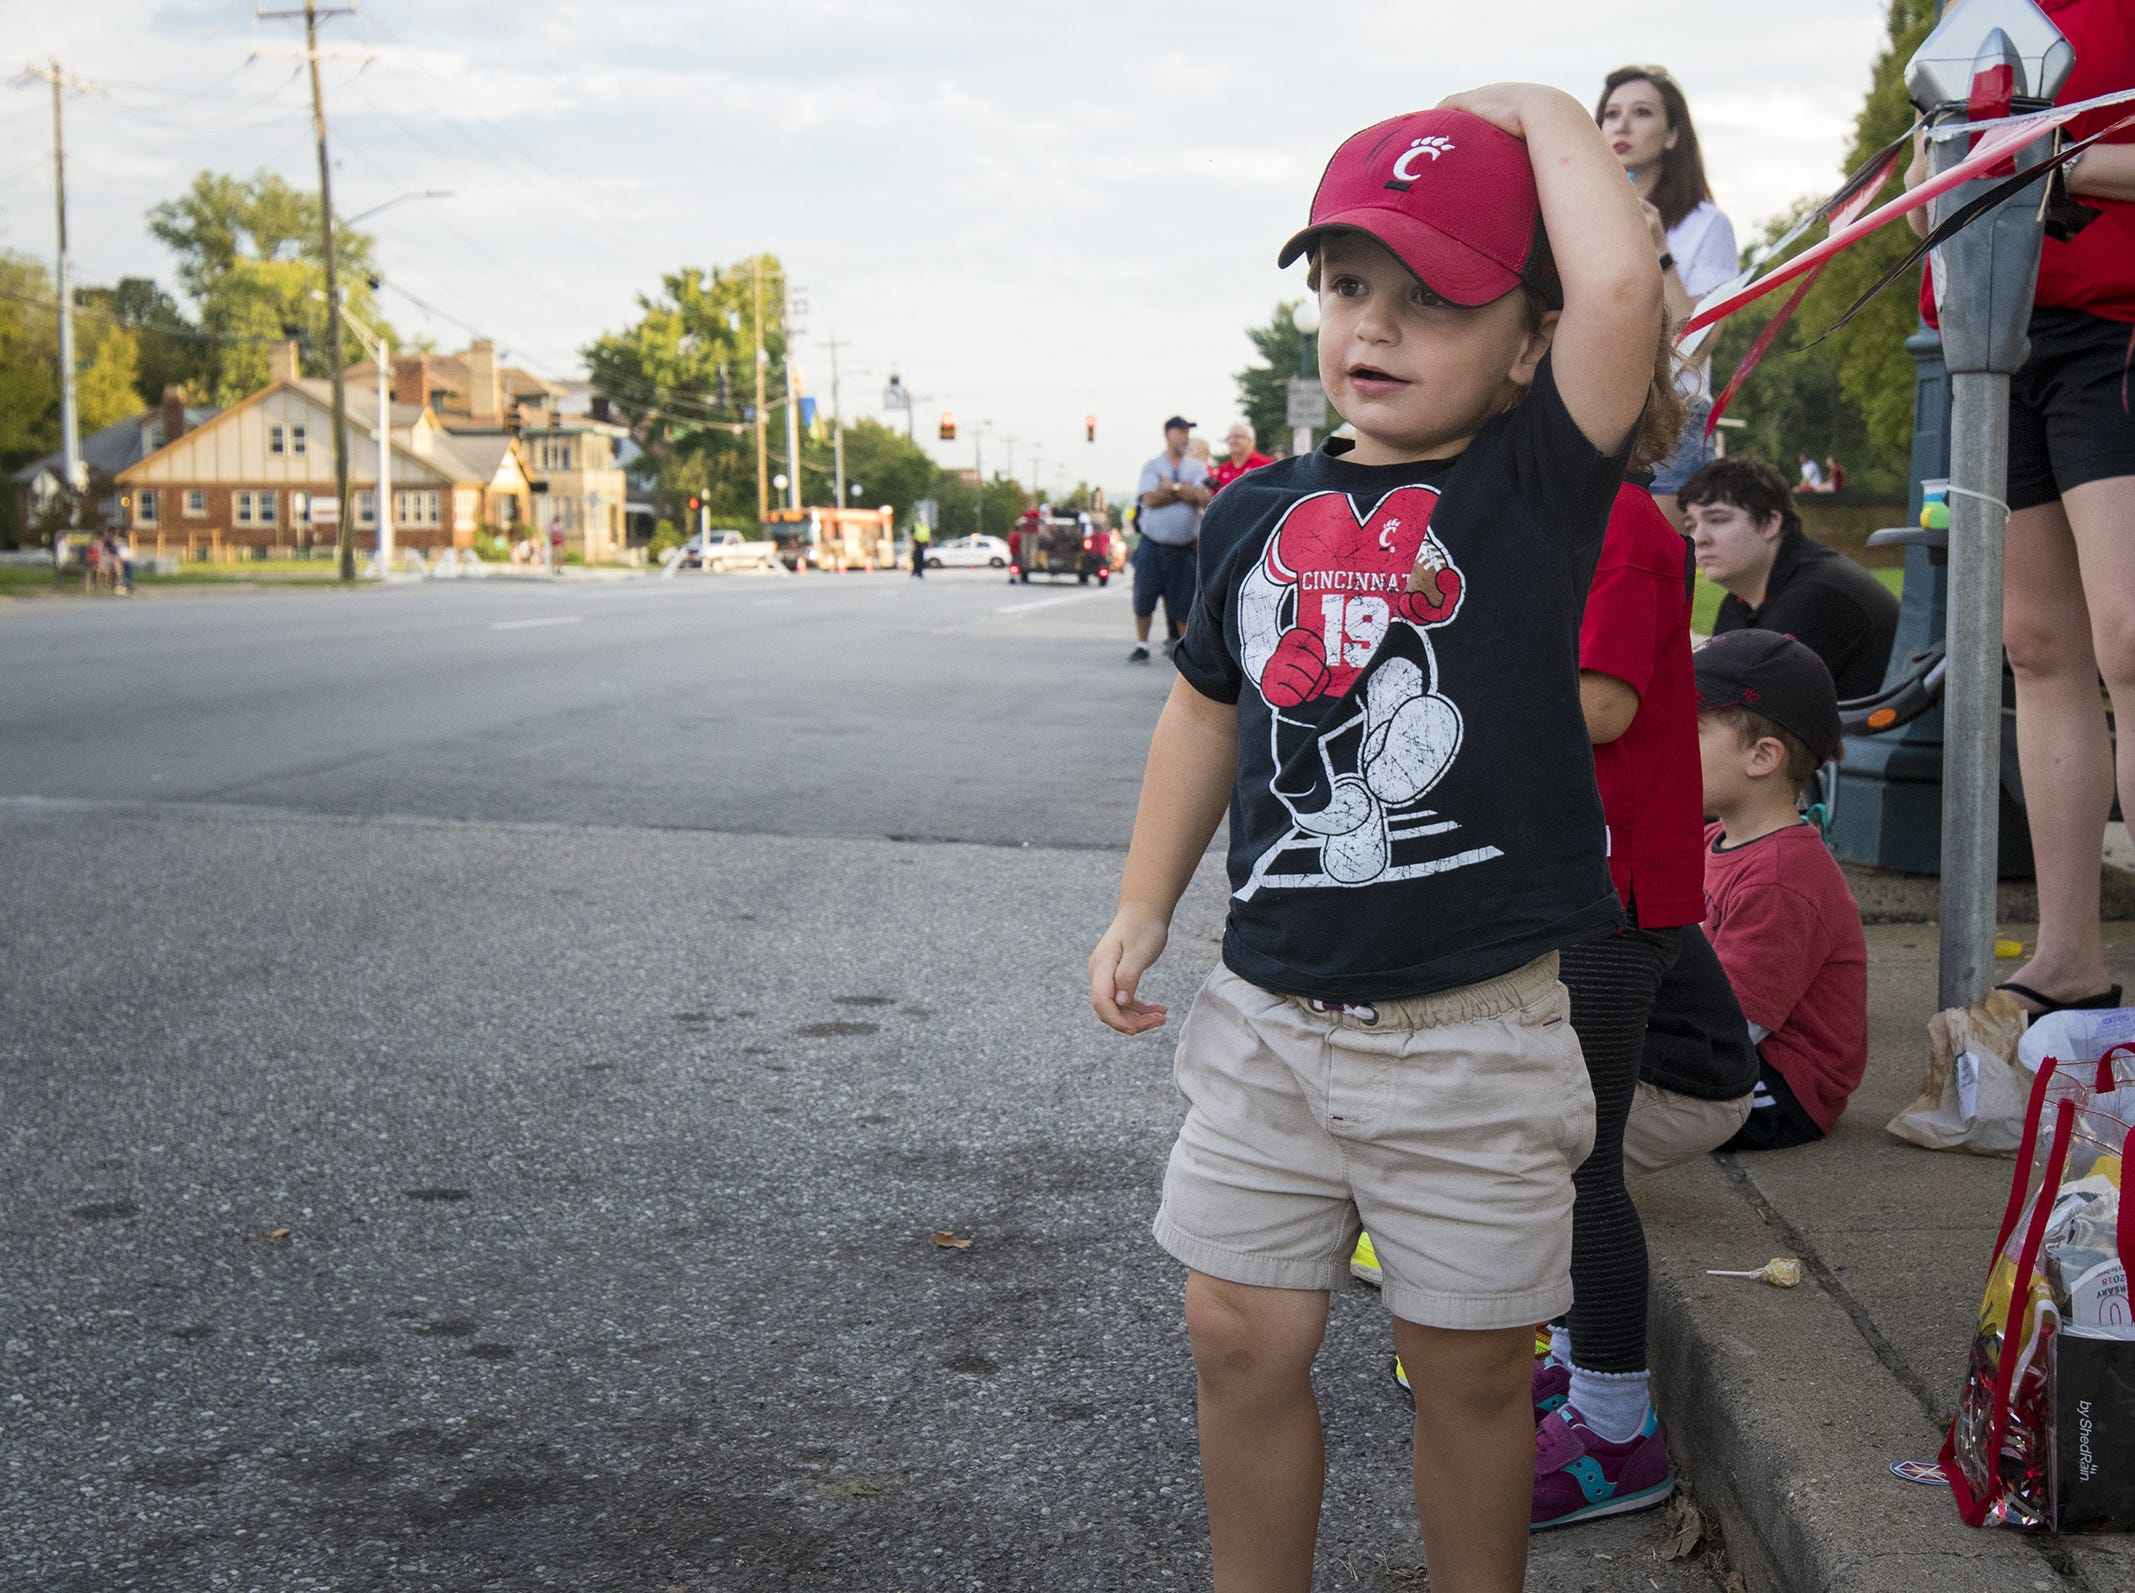 Joe Godshalk, 2, watches the annual University of Cincinnati Homecoming parade.